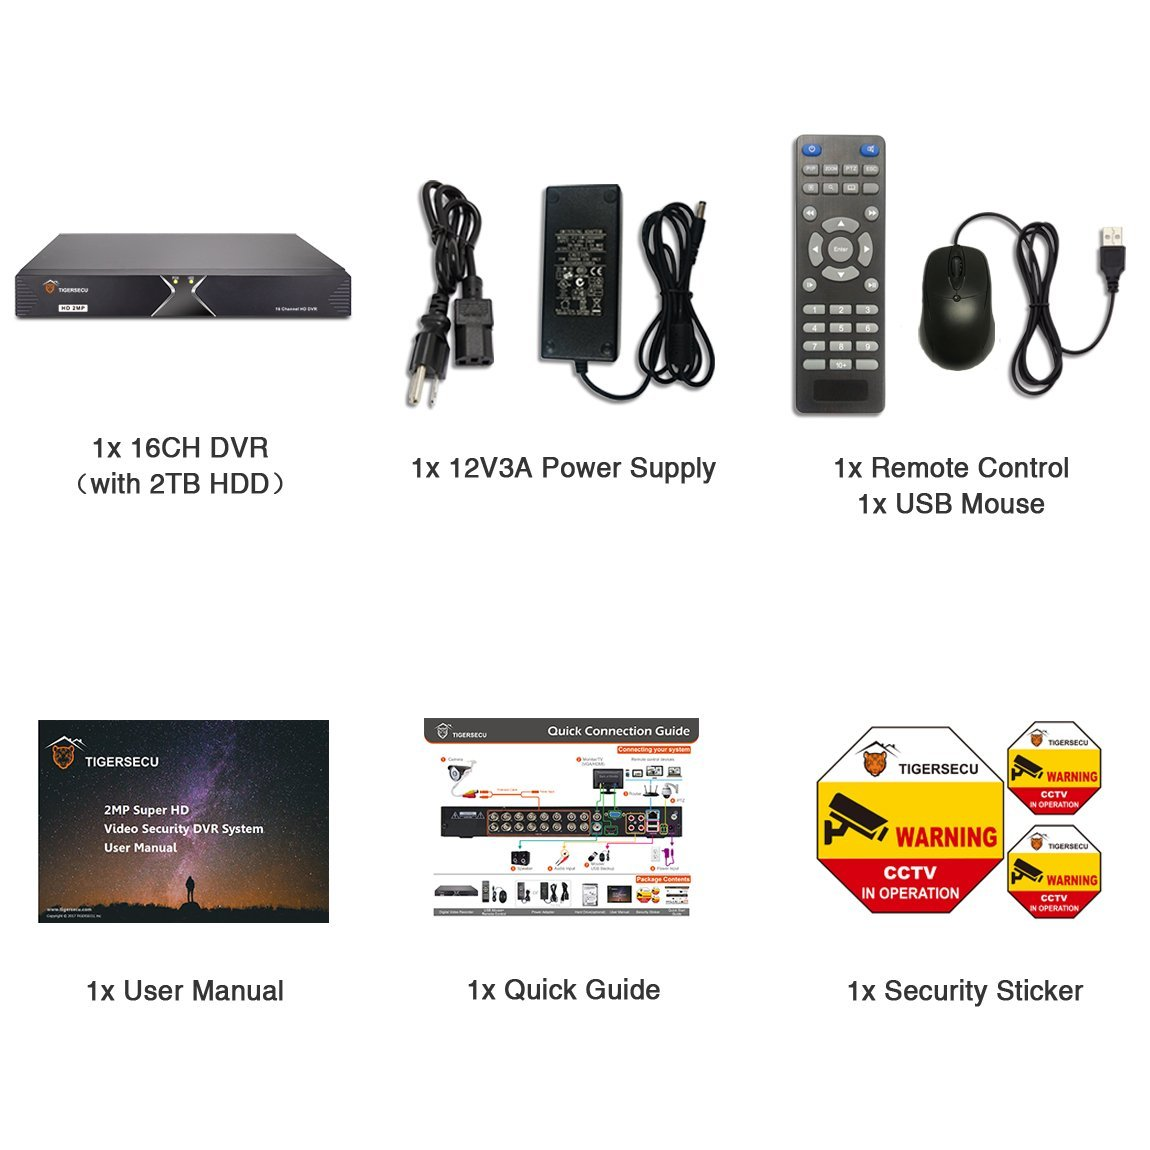 Amazon.com : TIGERSECU Super HD 1080P 16-Channel Hybrid 4-in-1 DVR Video  Security Recording System with 2TB Hard Drive (Cameras Not Included) :  Camera & ...